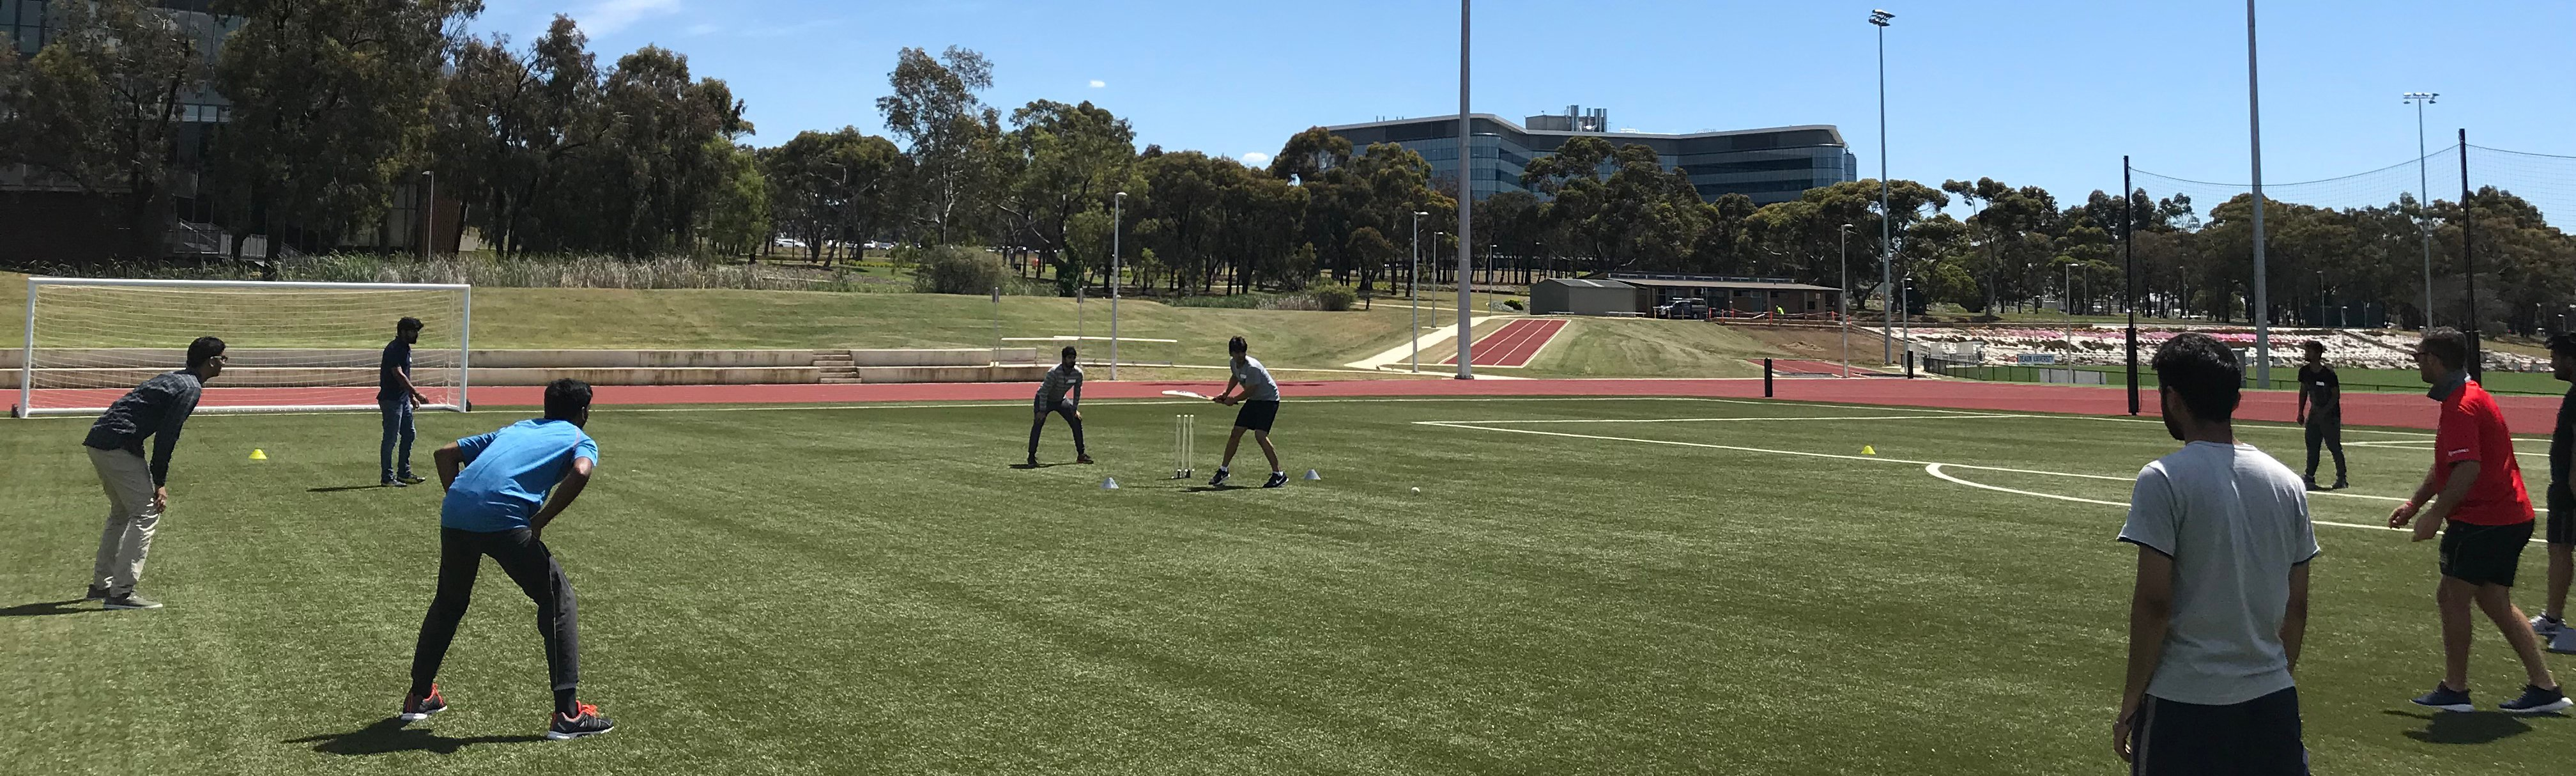 Students playing cricket at Deakin